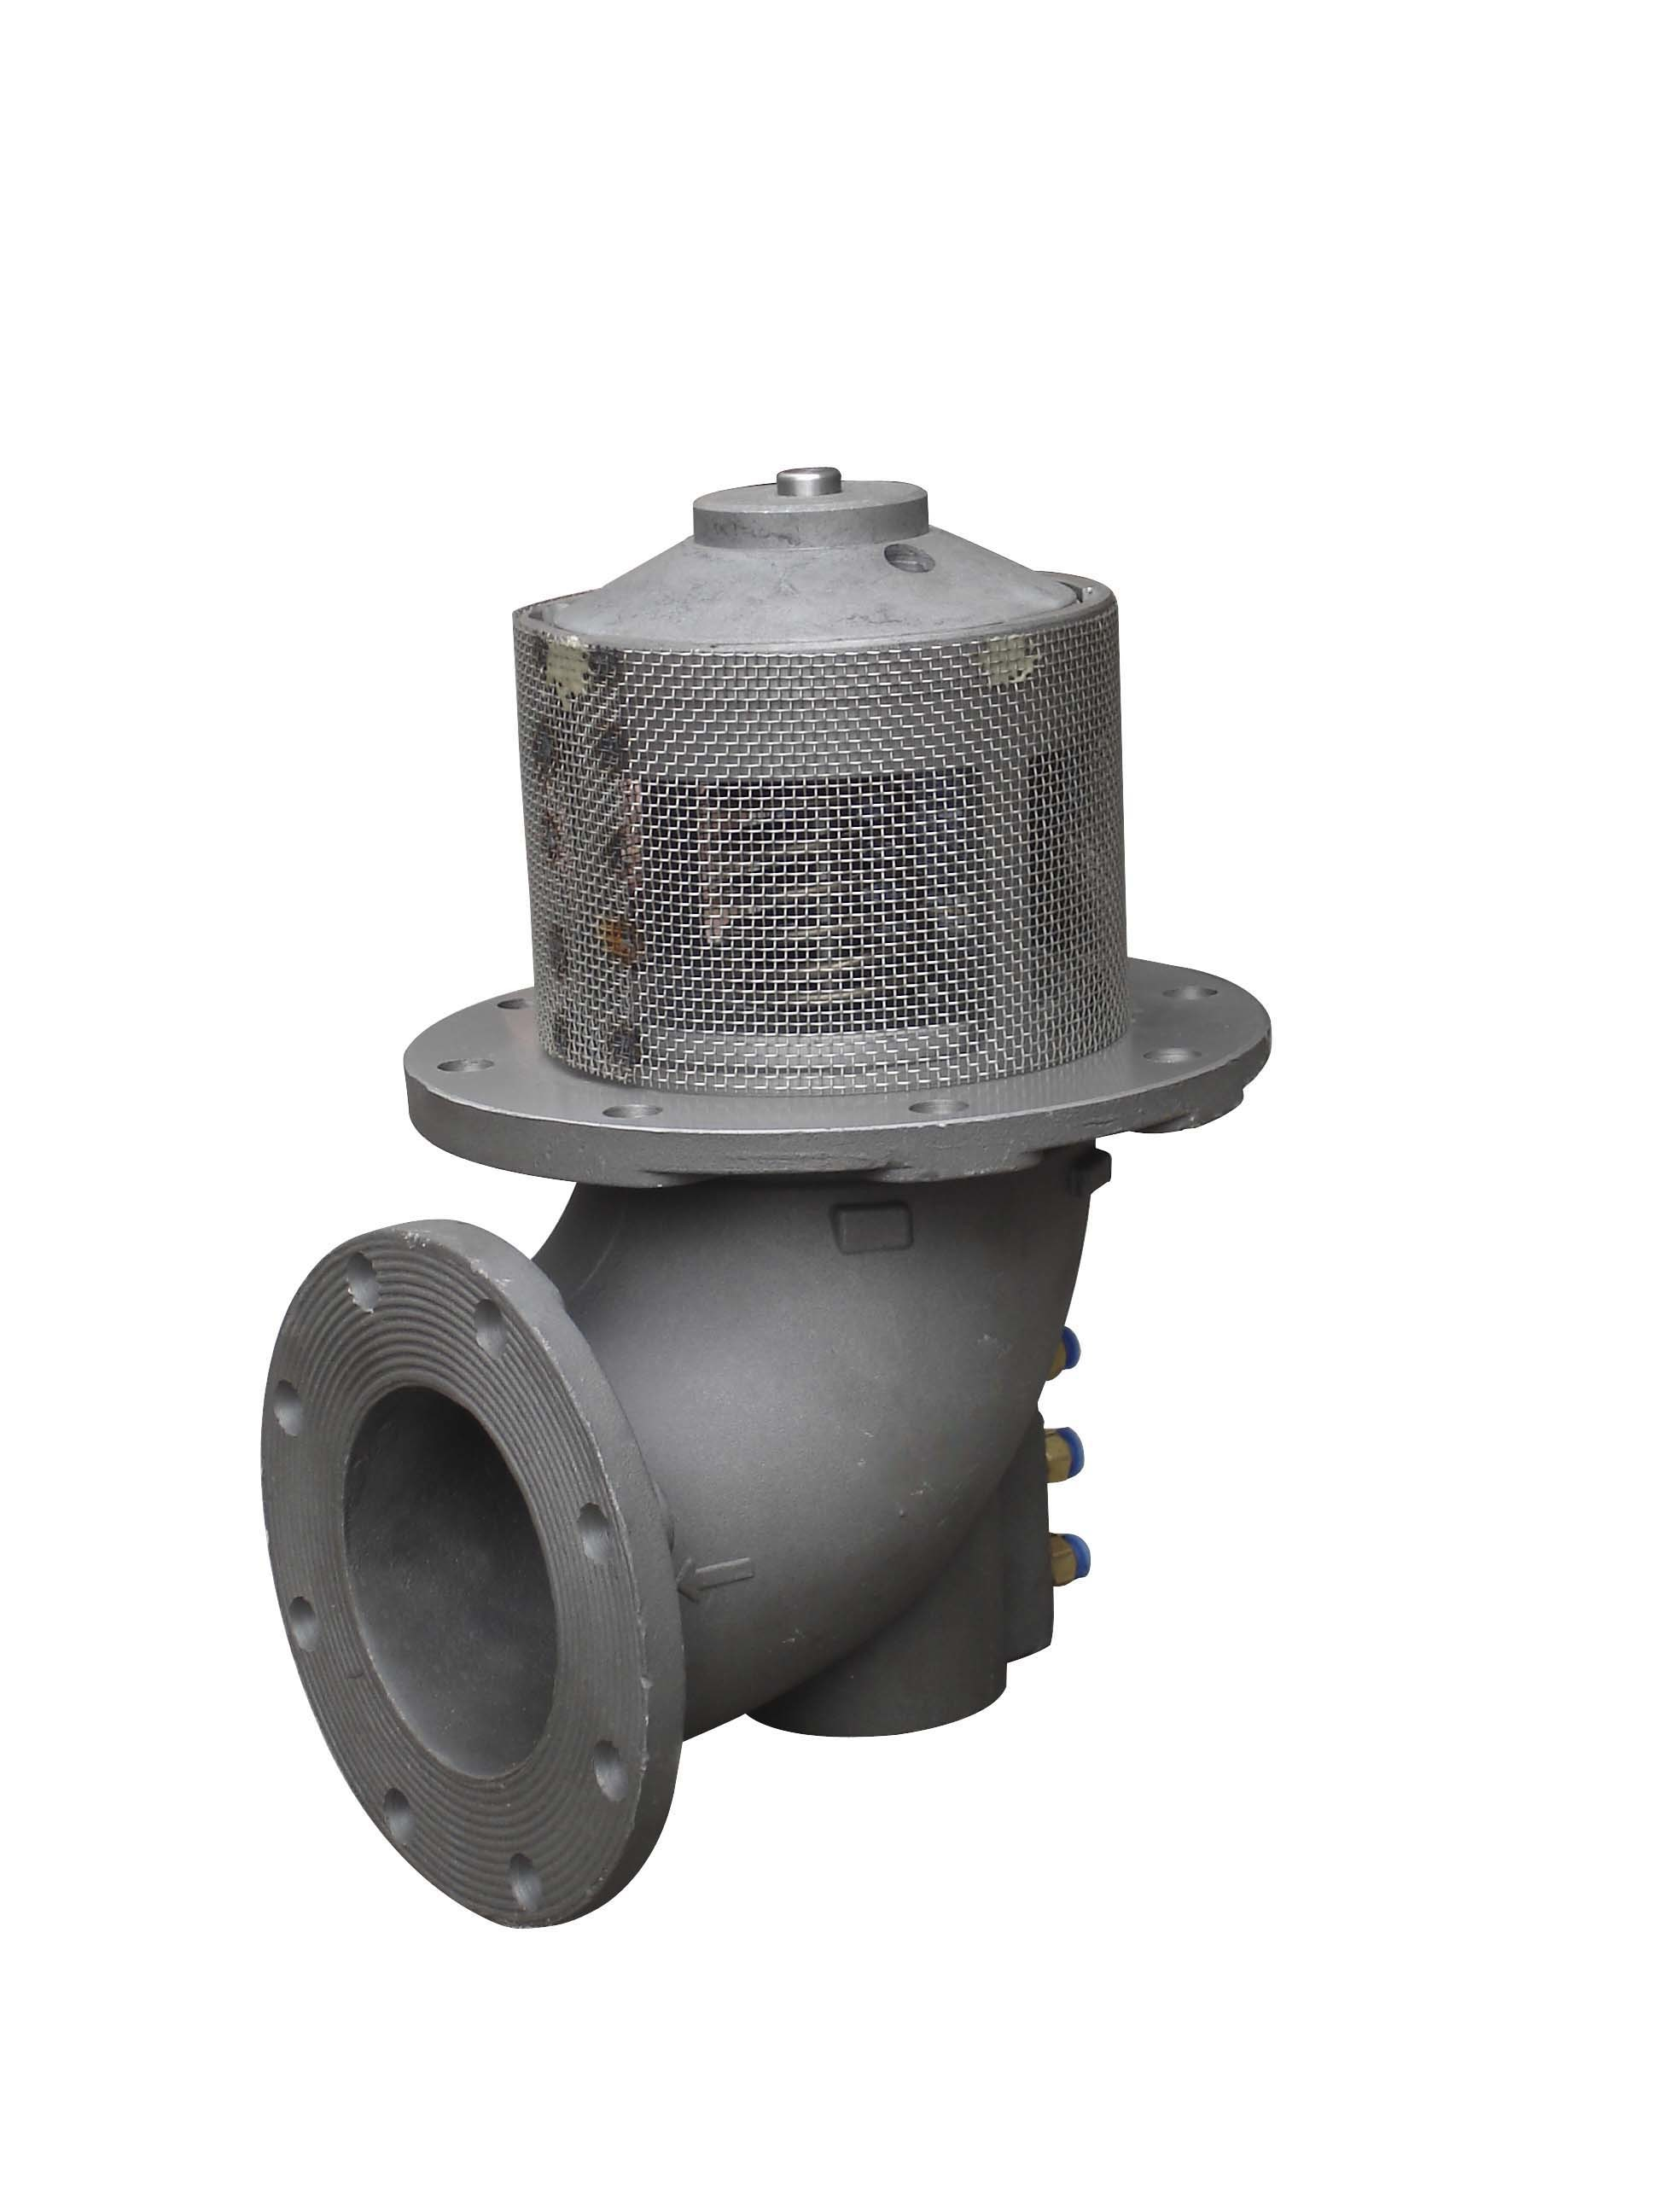 Aluminum Bottom Valve for Road Fuel Tanker